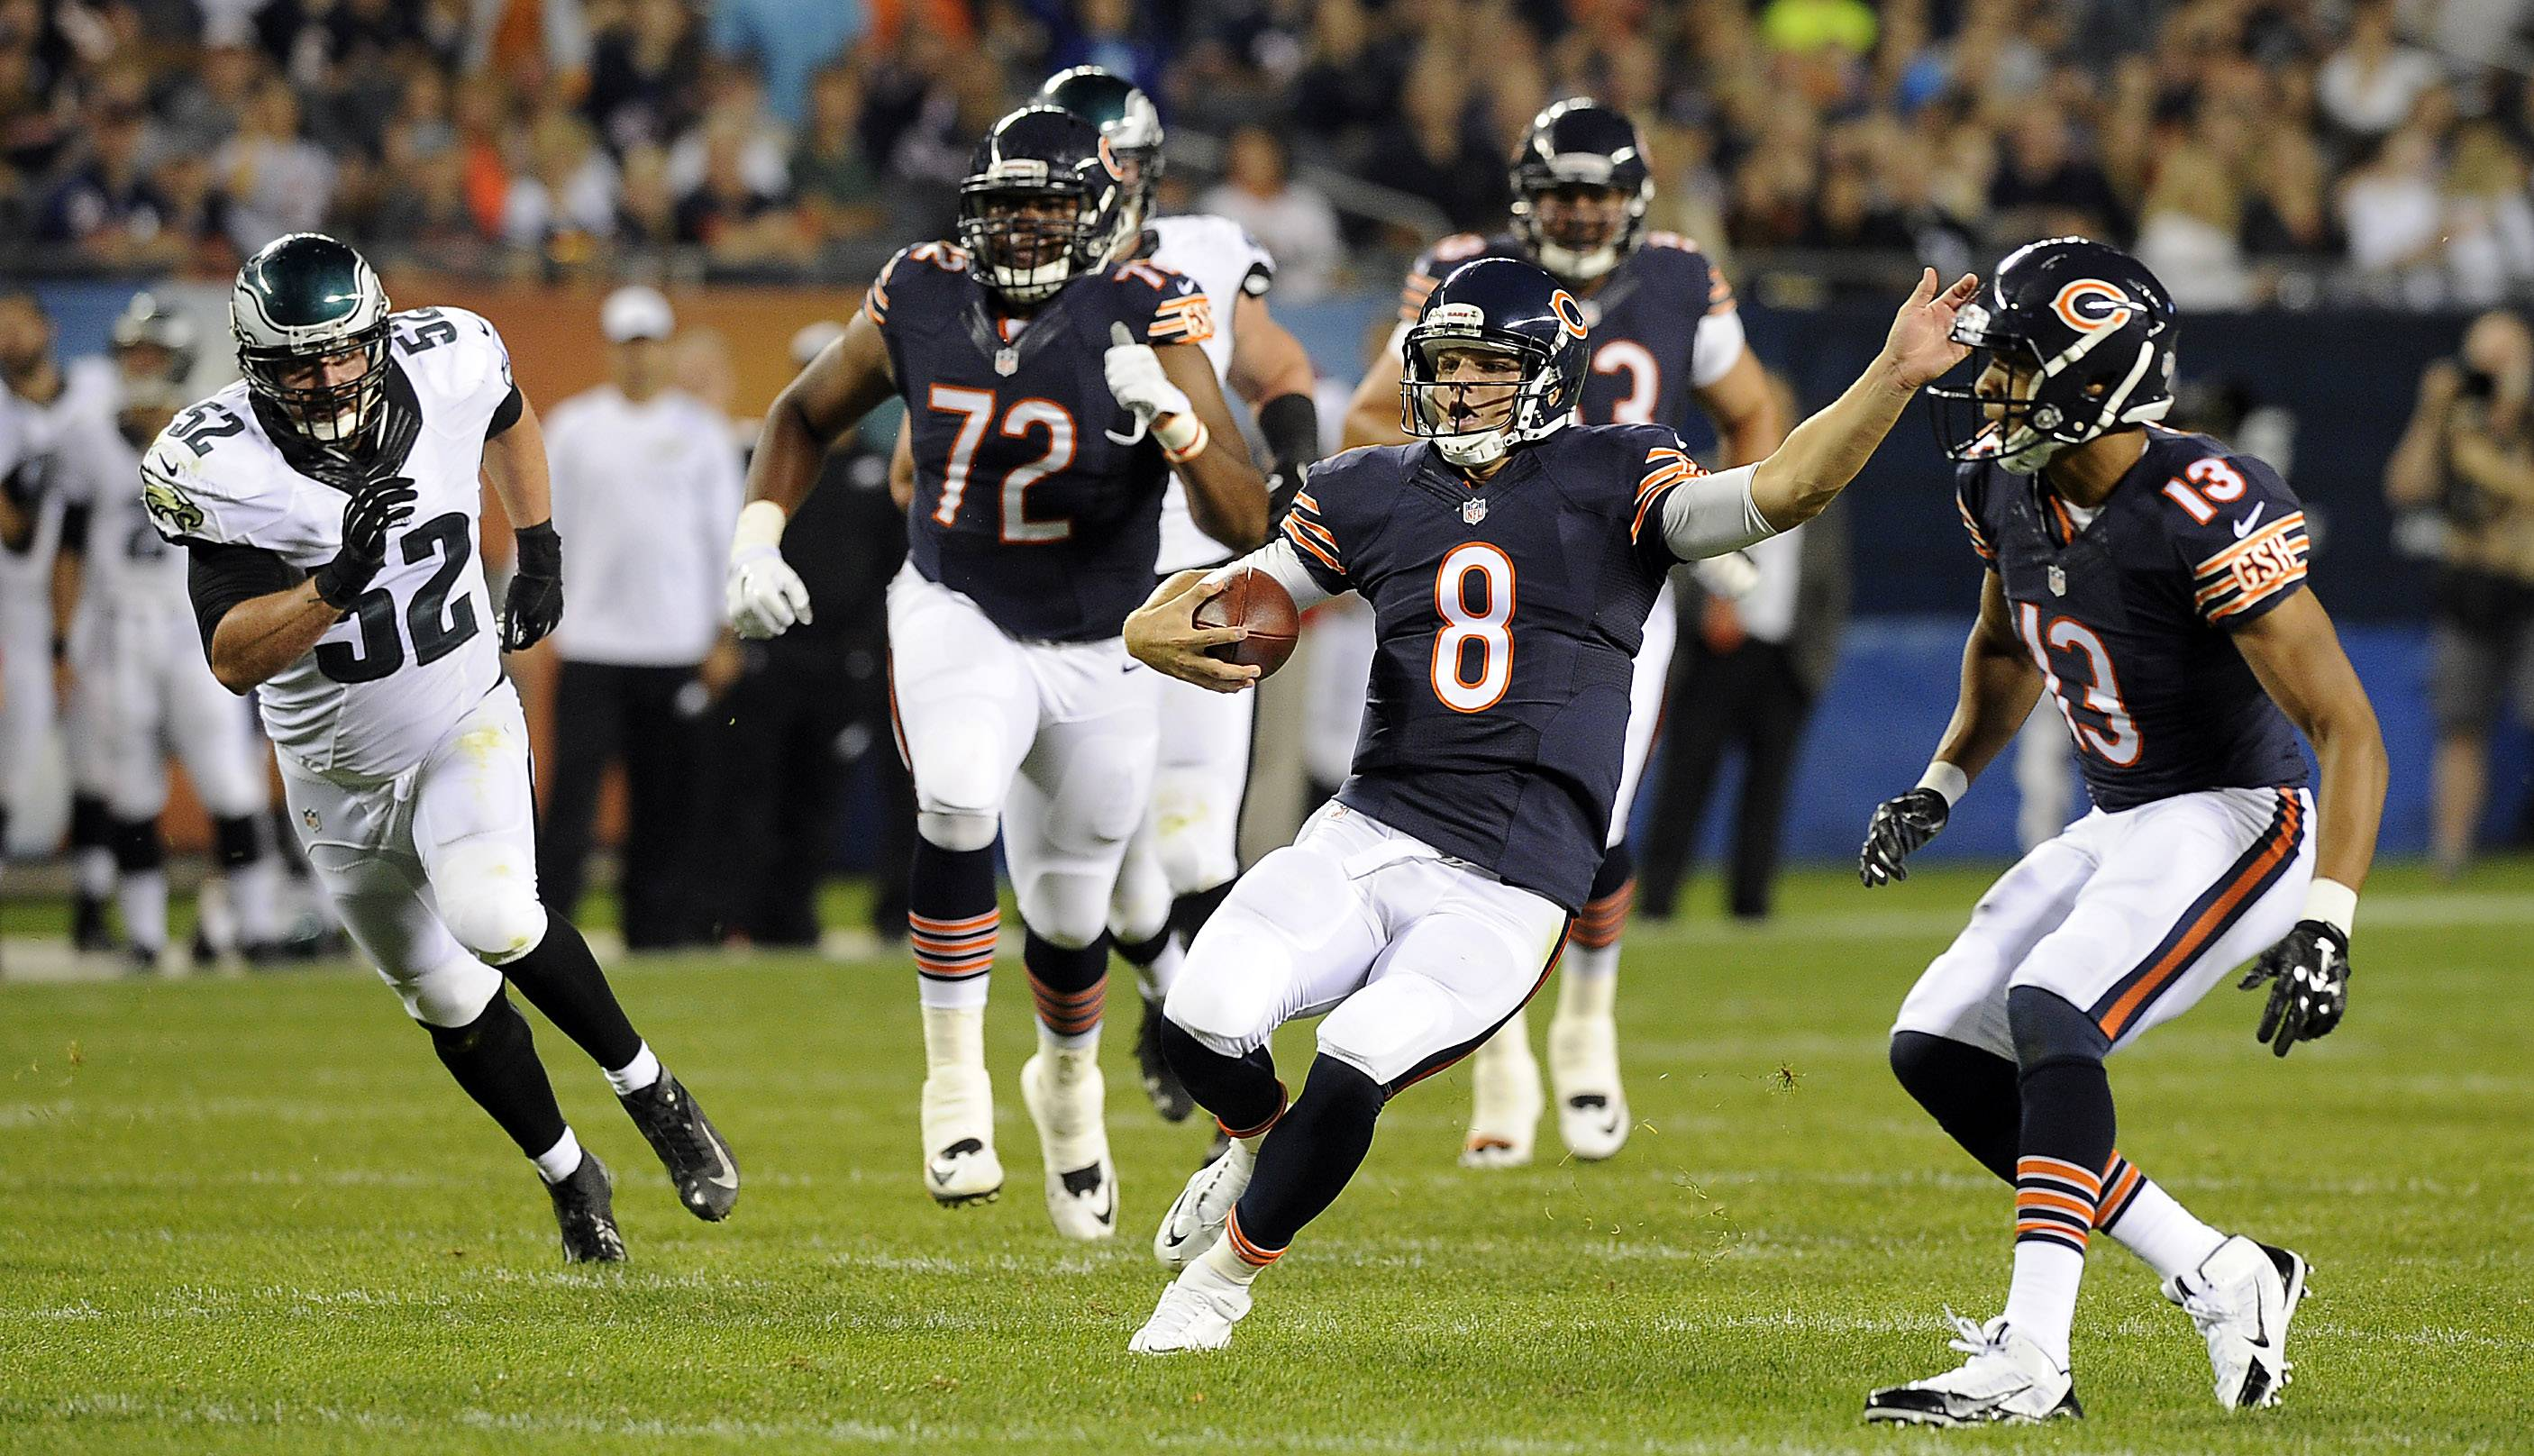 Chicago Bears quarterback Jimmy Clausen scrambles for yardage in the third quarter.